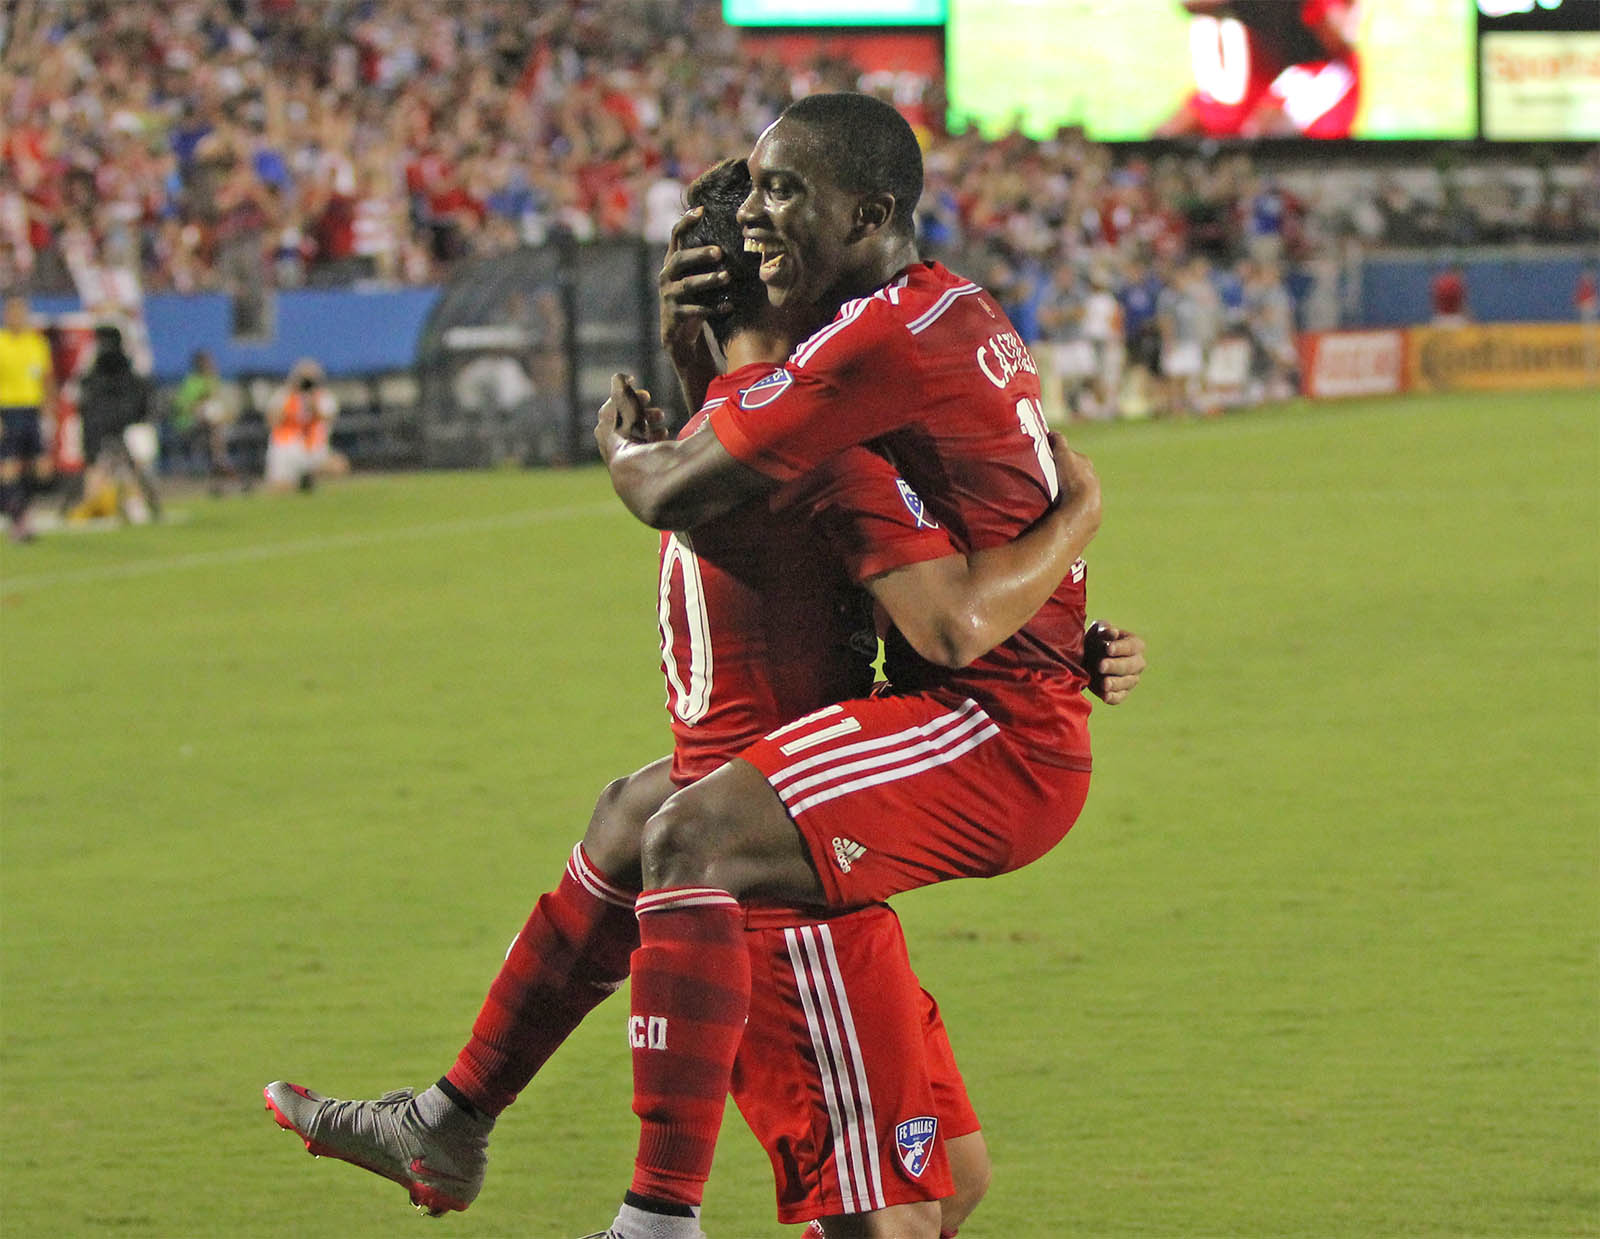 Fabian Castillo and Mauro Diaz celebrate their goal and assist against NE Revolution on July 4, 2015. Photo by David Chaffin for Soccer Information Network